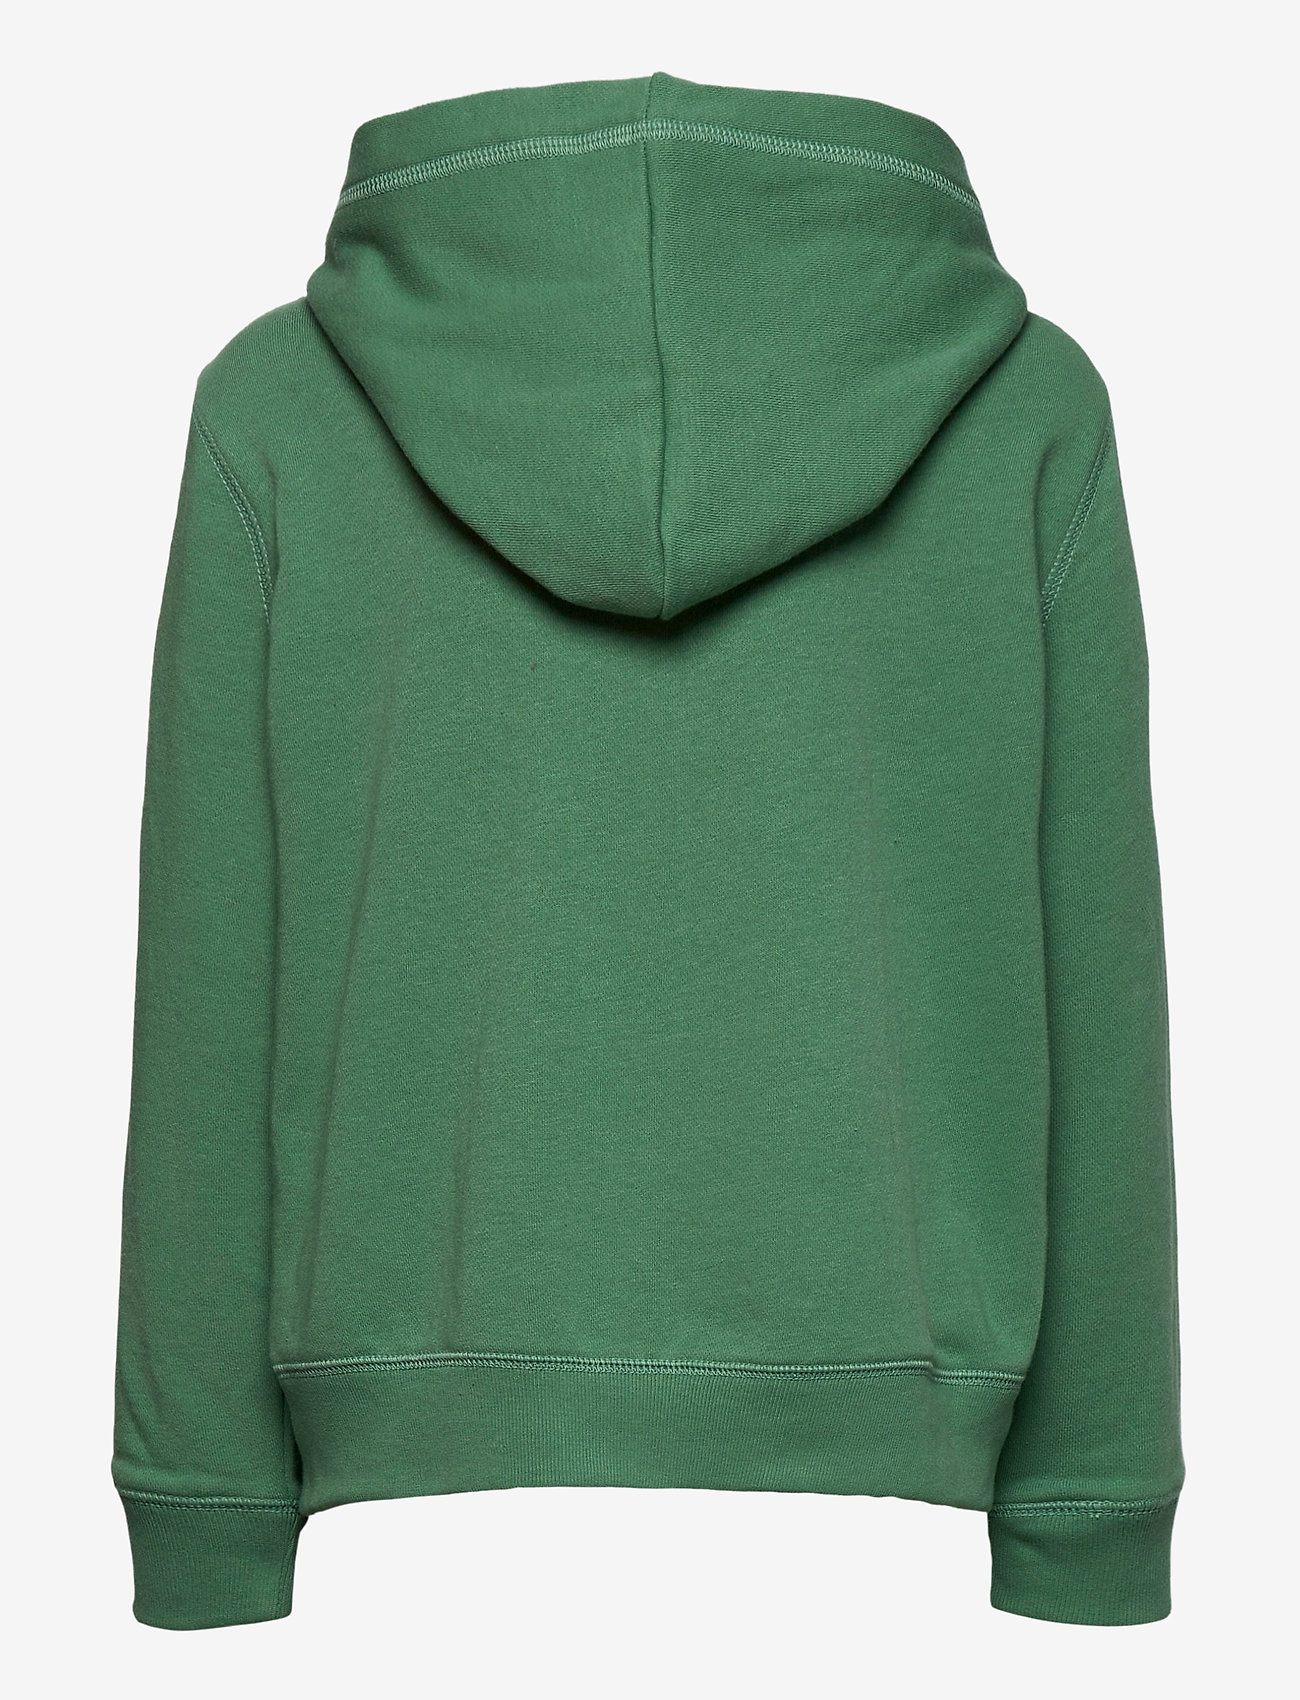 GAP - IE FT BASIC ARCH FZ - kapuzenpullover - arctic green 612 - 1